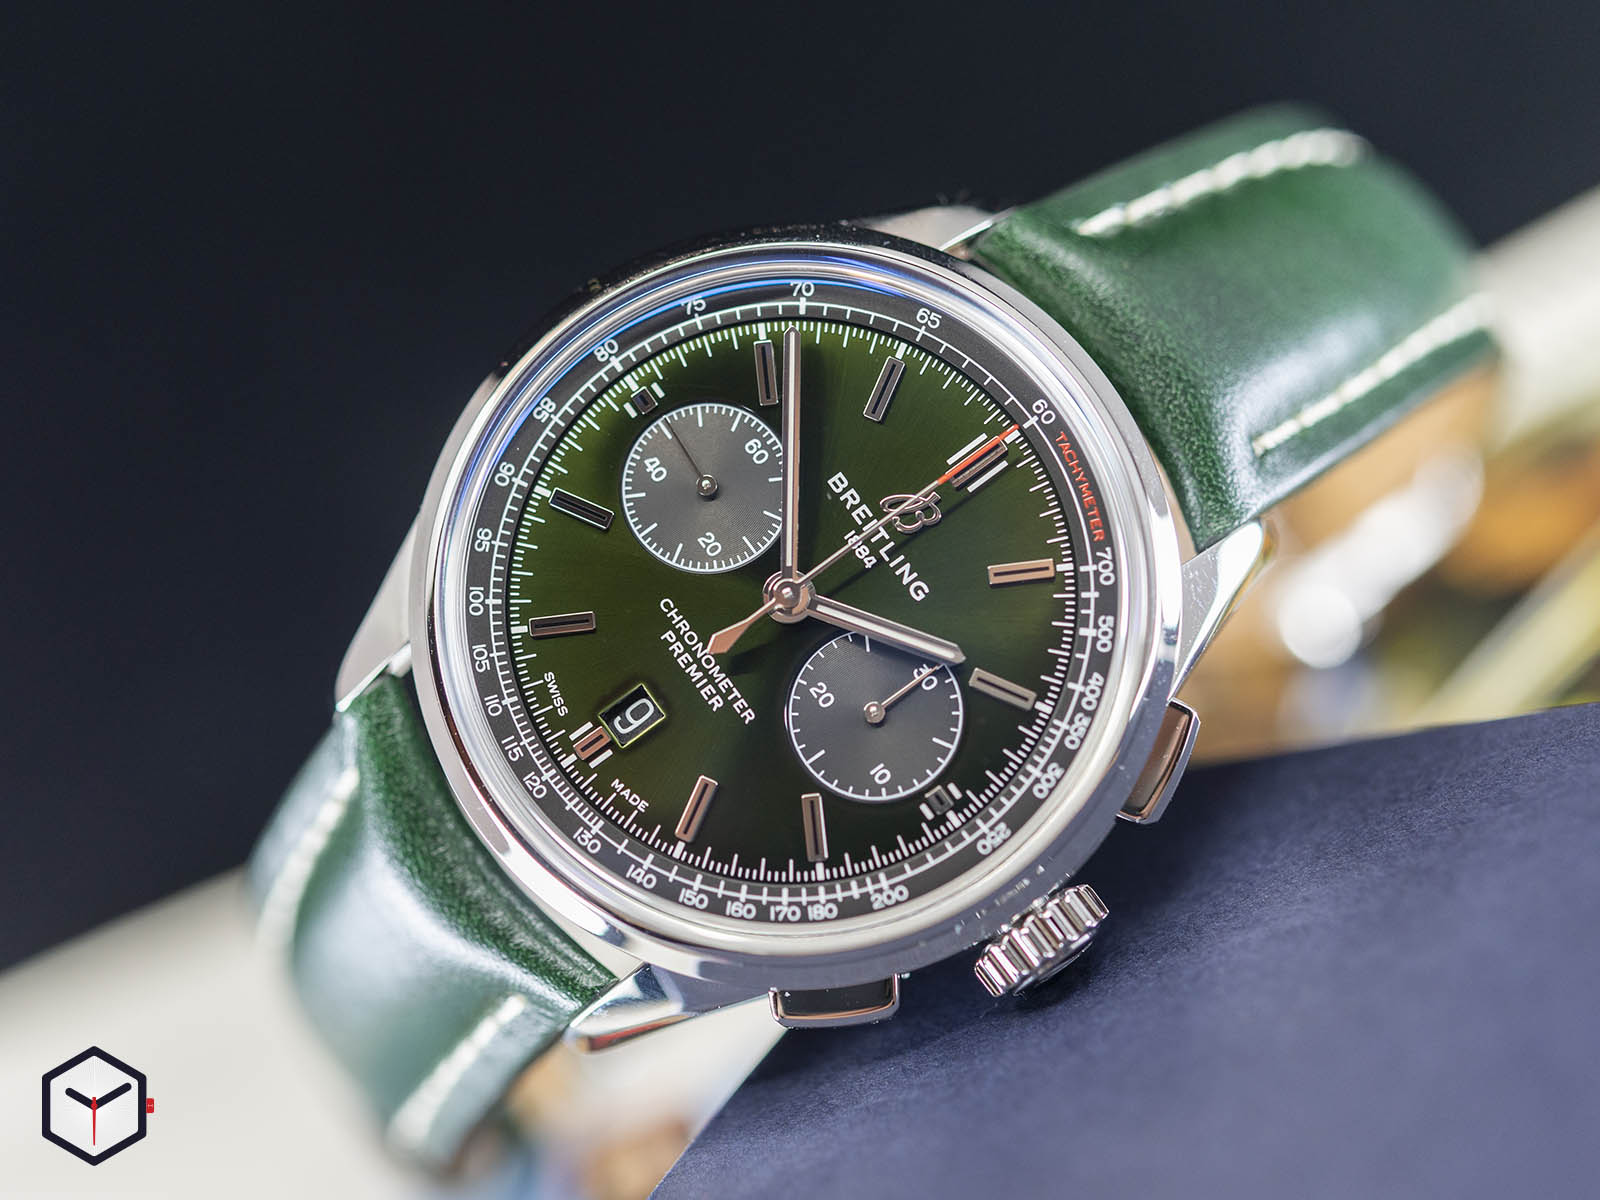 ab0118a11l1x1-breitling-premier-b01-chronograph-42-bentley-british-racing-green-2.jpg